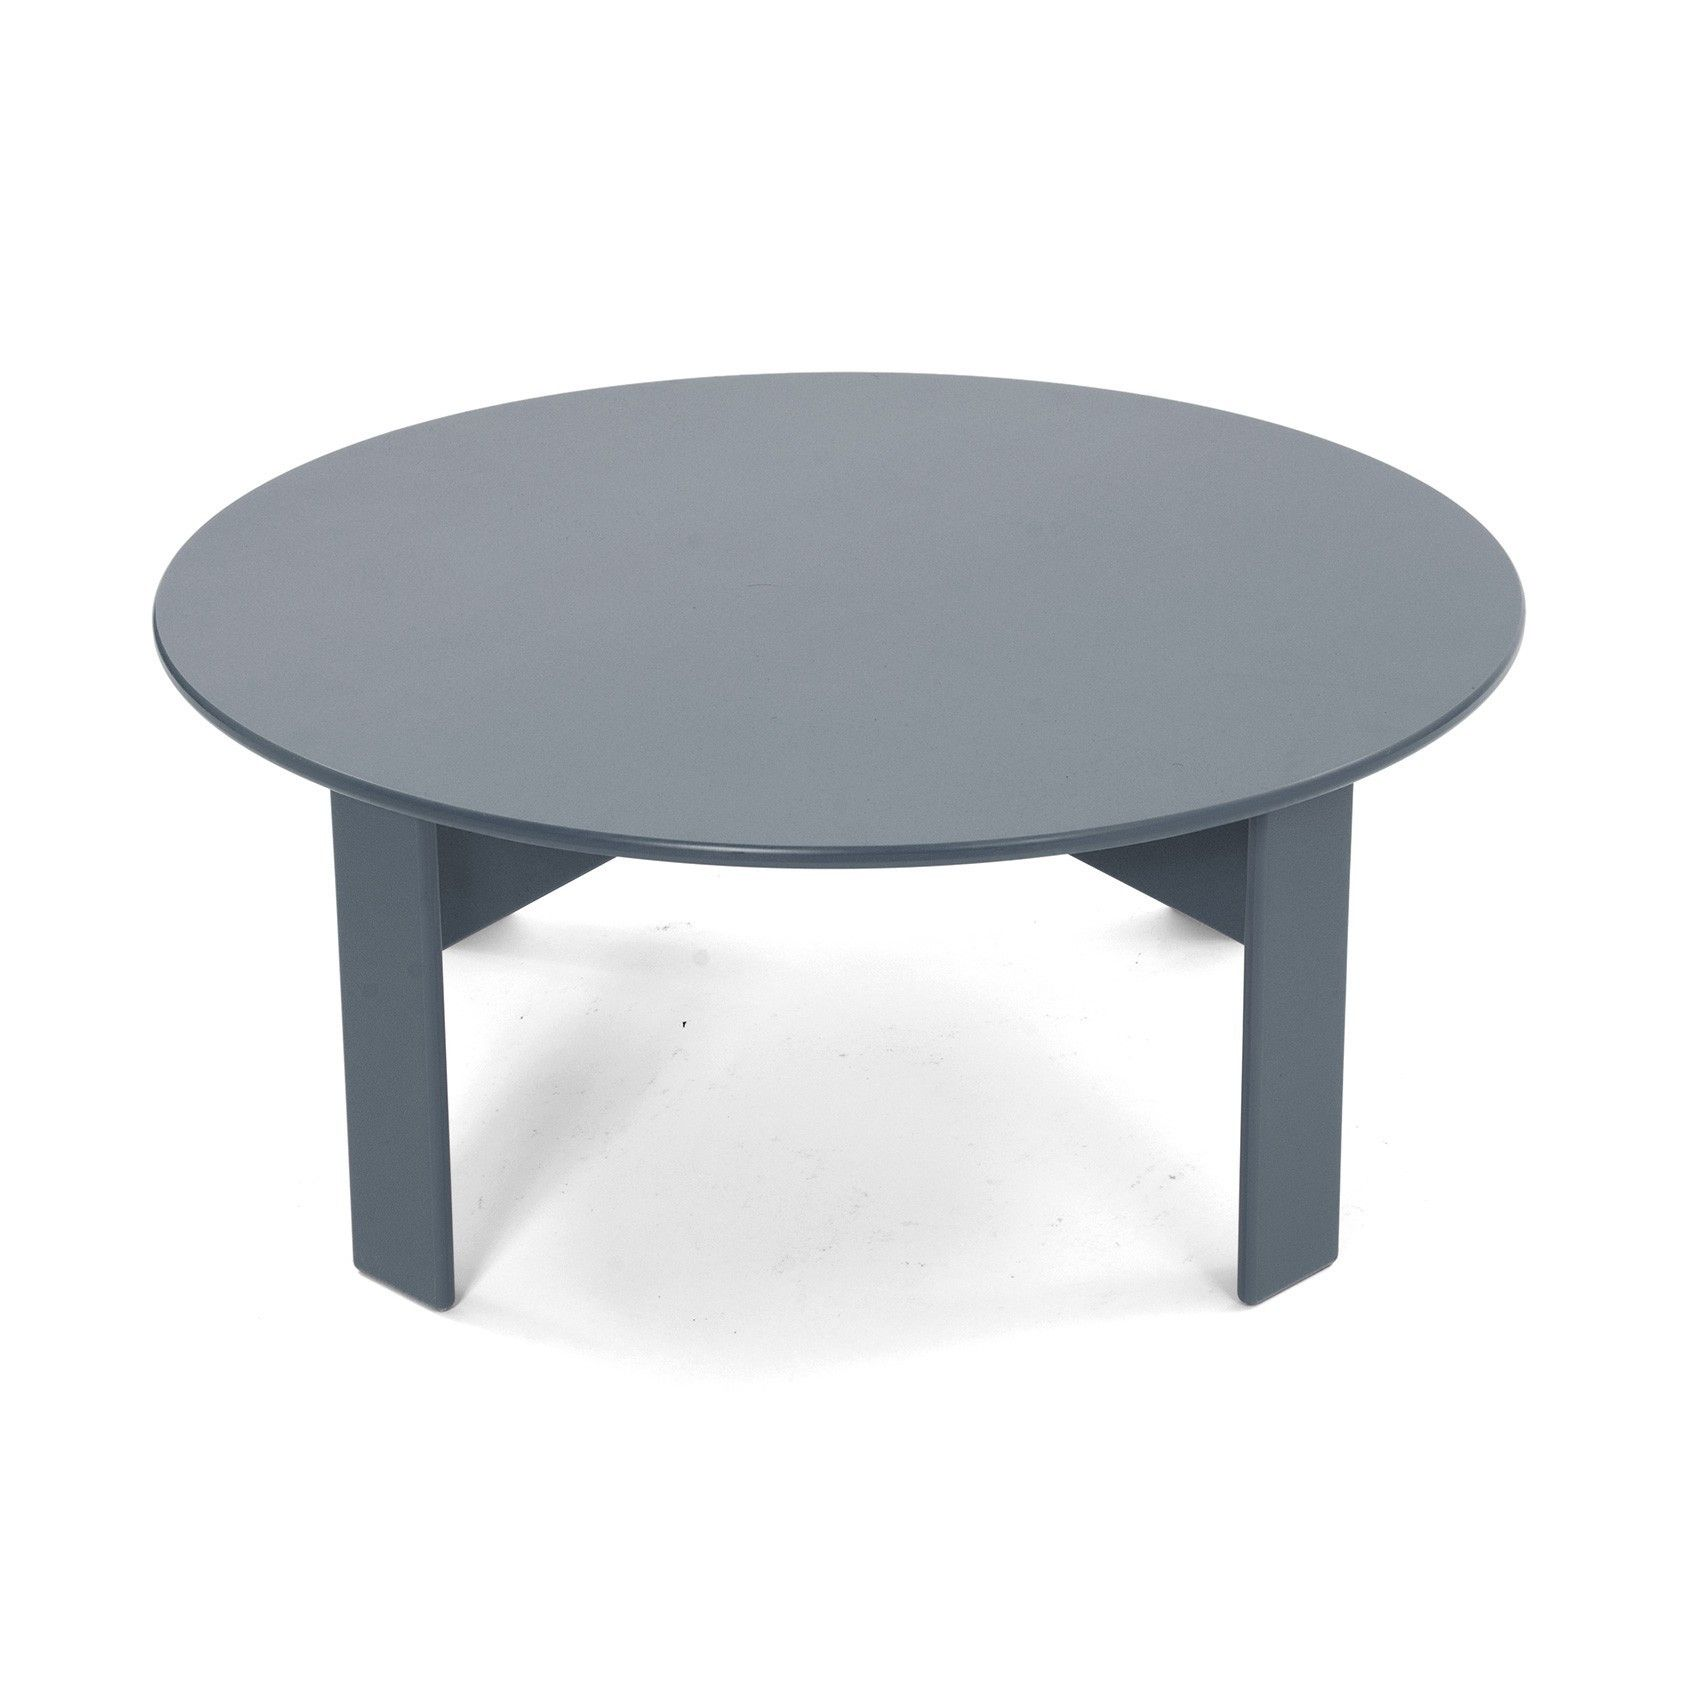 Bear Coffee Table With Glass Top Shopping Around For Furniture